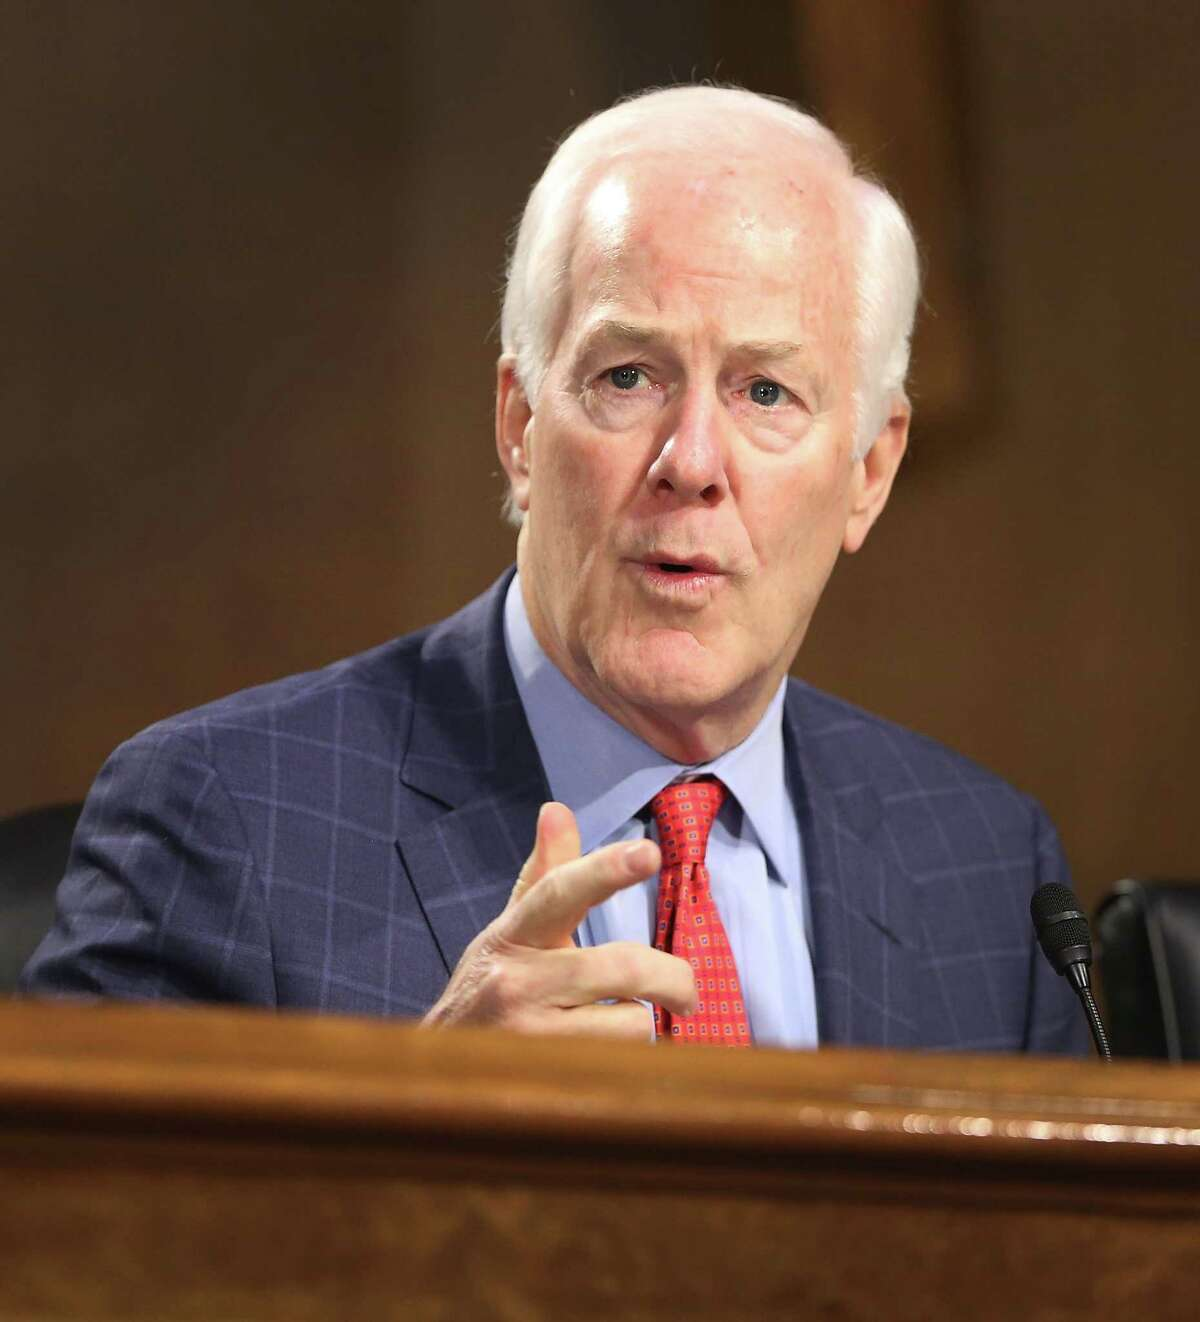 WASHINGTON, DC - JANUARY 12: Sen. John Cornyn (R-TX) asks a question during the confirmation hearing for U.S. President-elect Donald Trump's nominee for the director of the CIA, Rep.éŠMike Pompeo (R-KS) before the Senate (Select) Intelligence Committee on January 12, 2017 in Washington, DC. Mr. Pompeo is a former Army officer who graduated first in his class from West Point. (Photo by Joe Raedle/Getty Images)